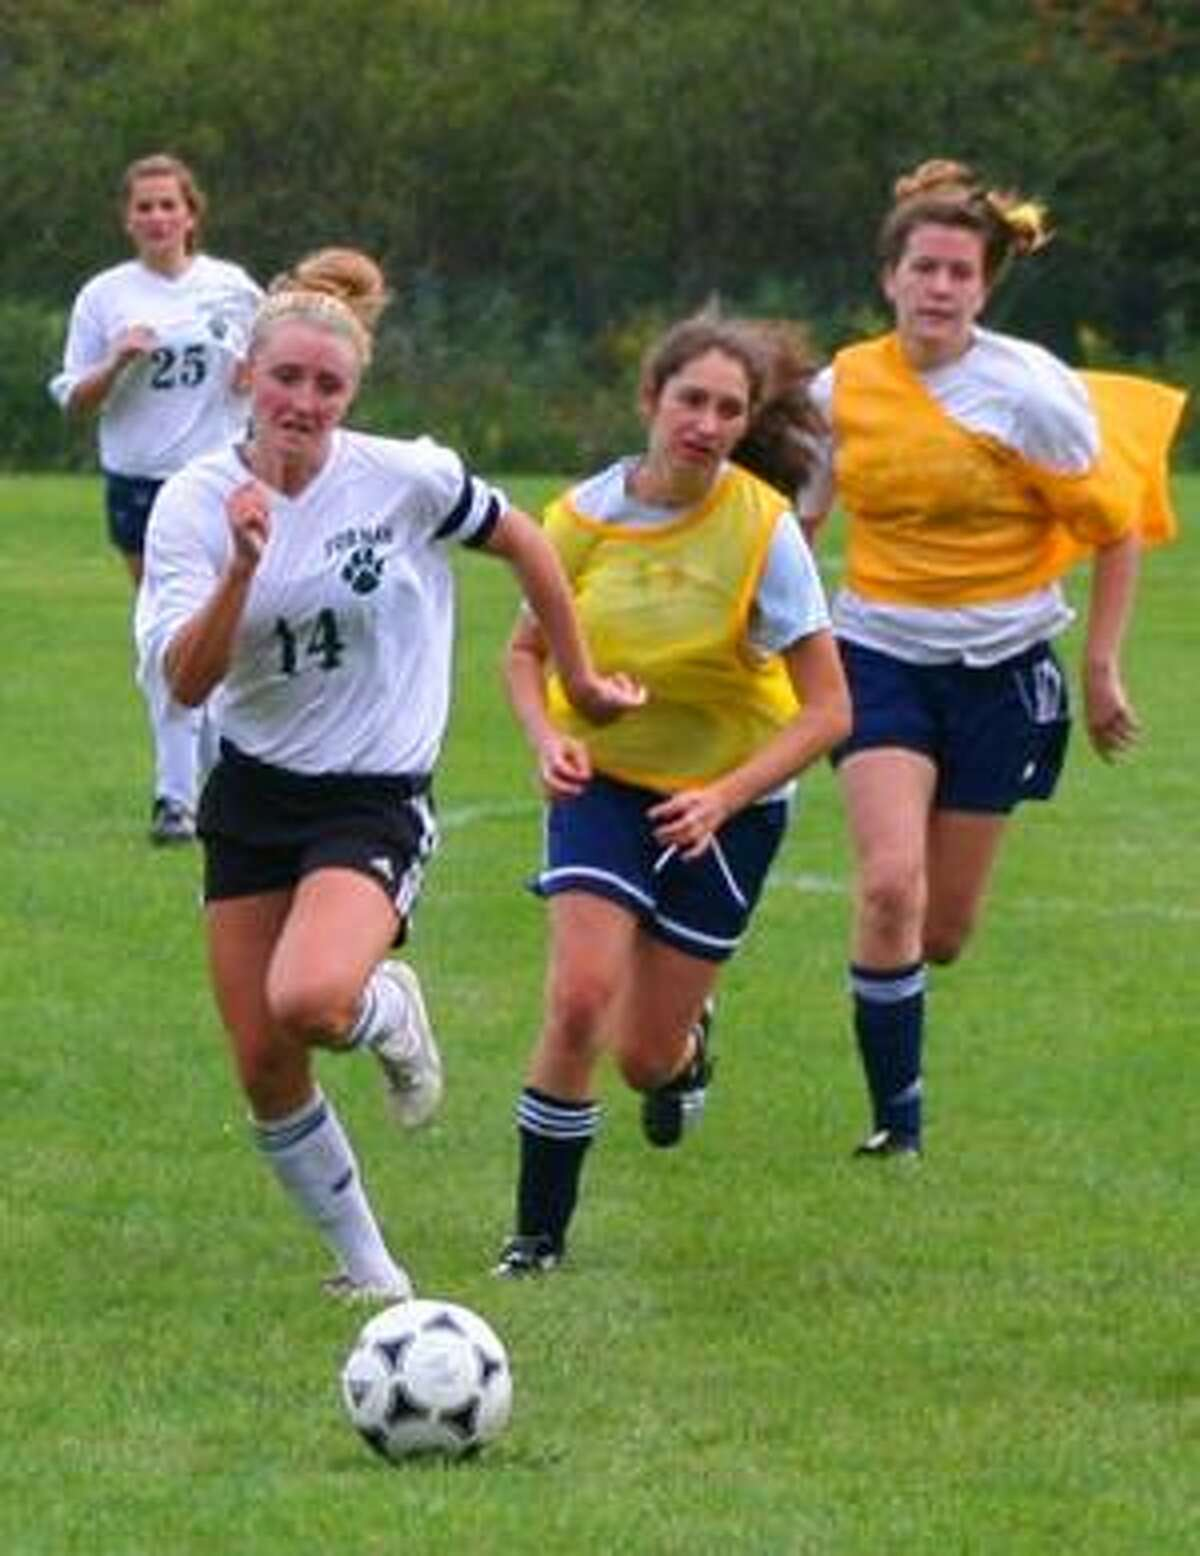 Submitted photo Lindsay Watkins (14) is a junior at the Forman School in Litchfield and has already given a verbal commitment to play at the University of Connecticut after graduation in 2011.